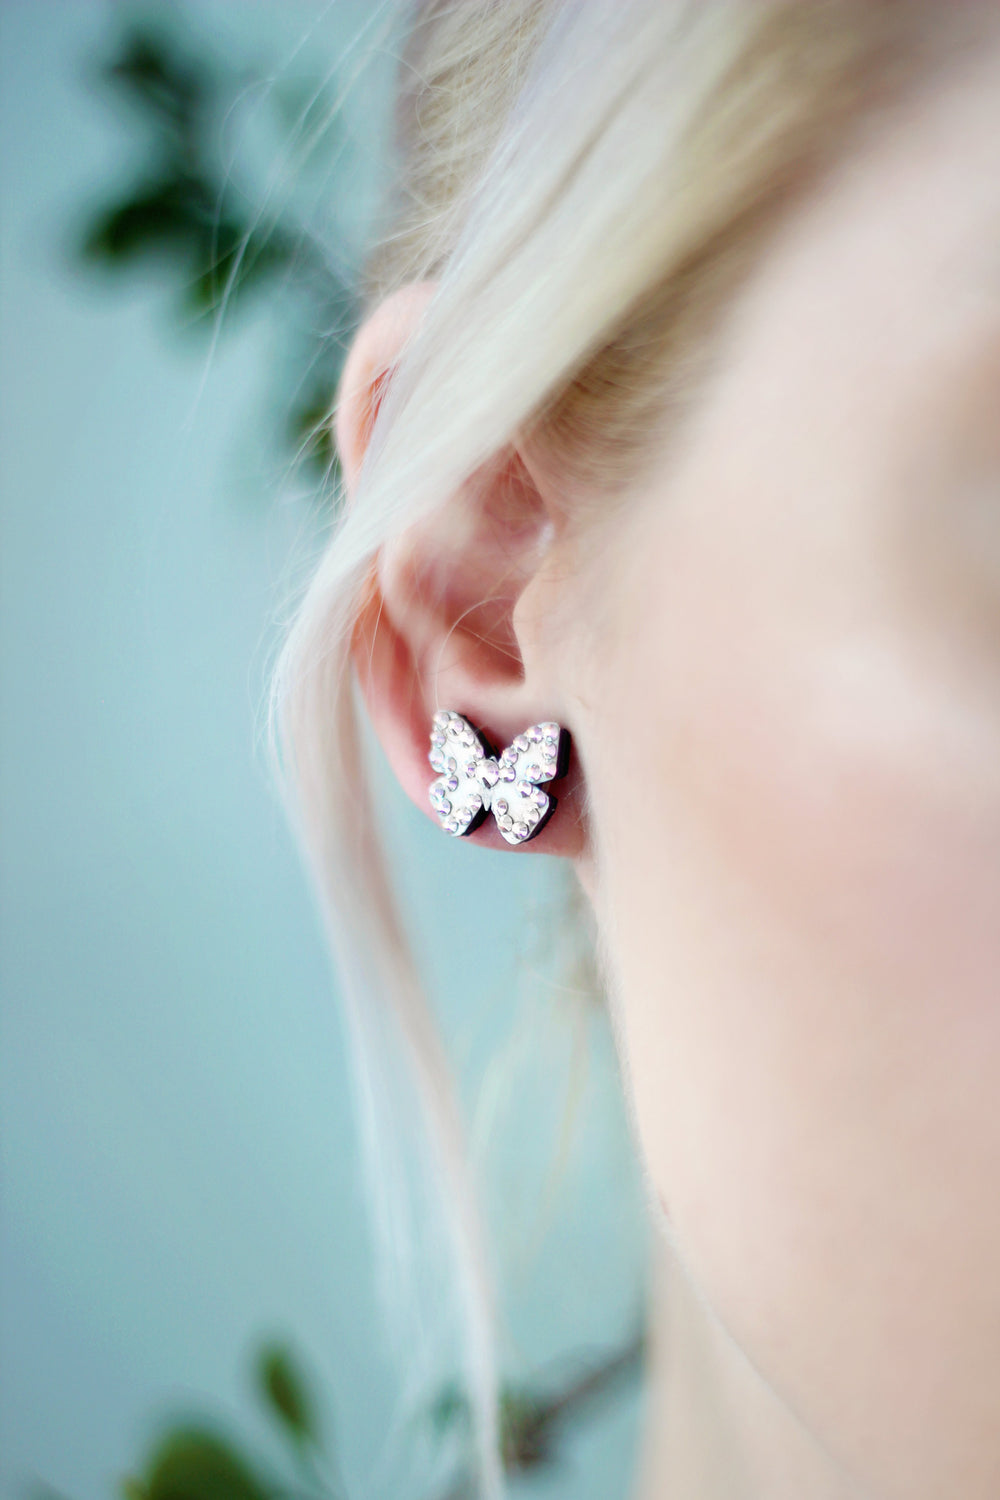 Twinkling Star Earrings - KUMA Design Store